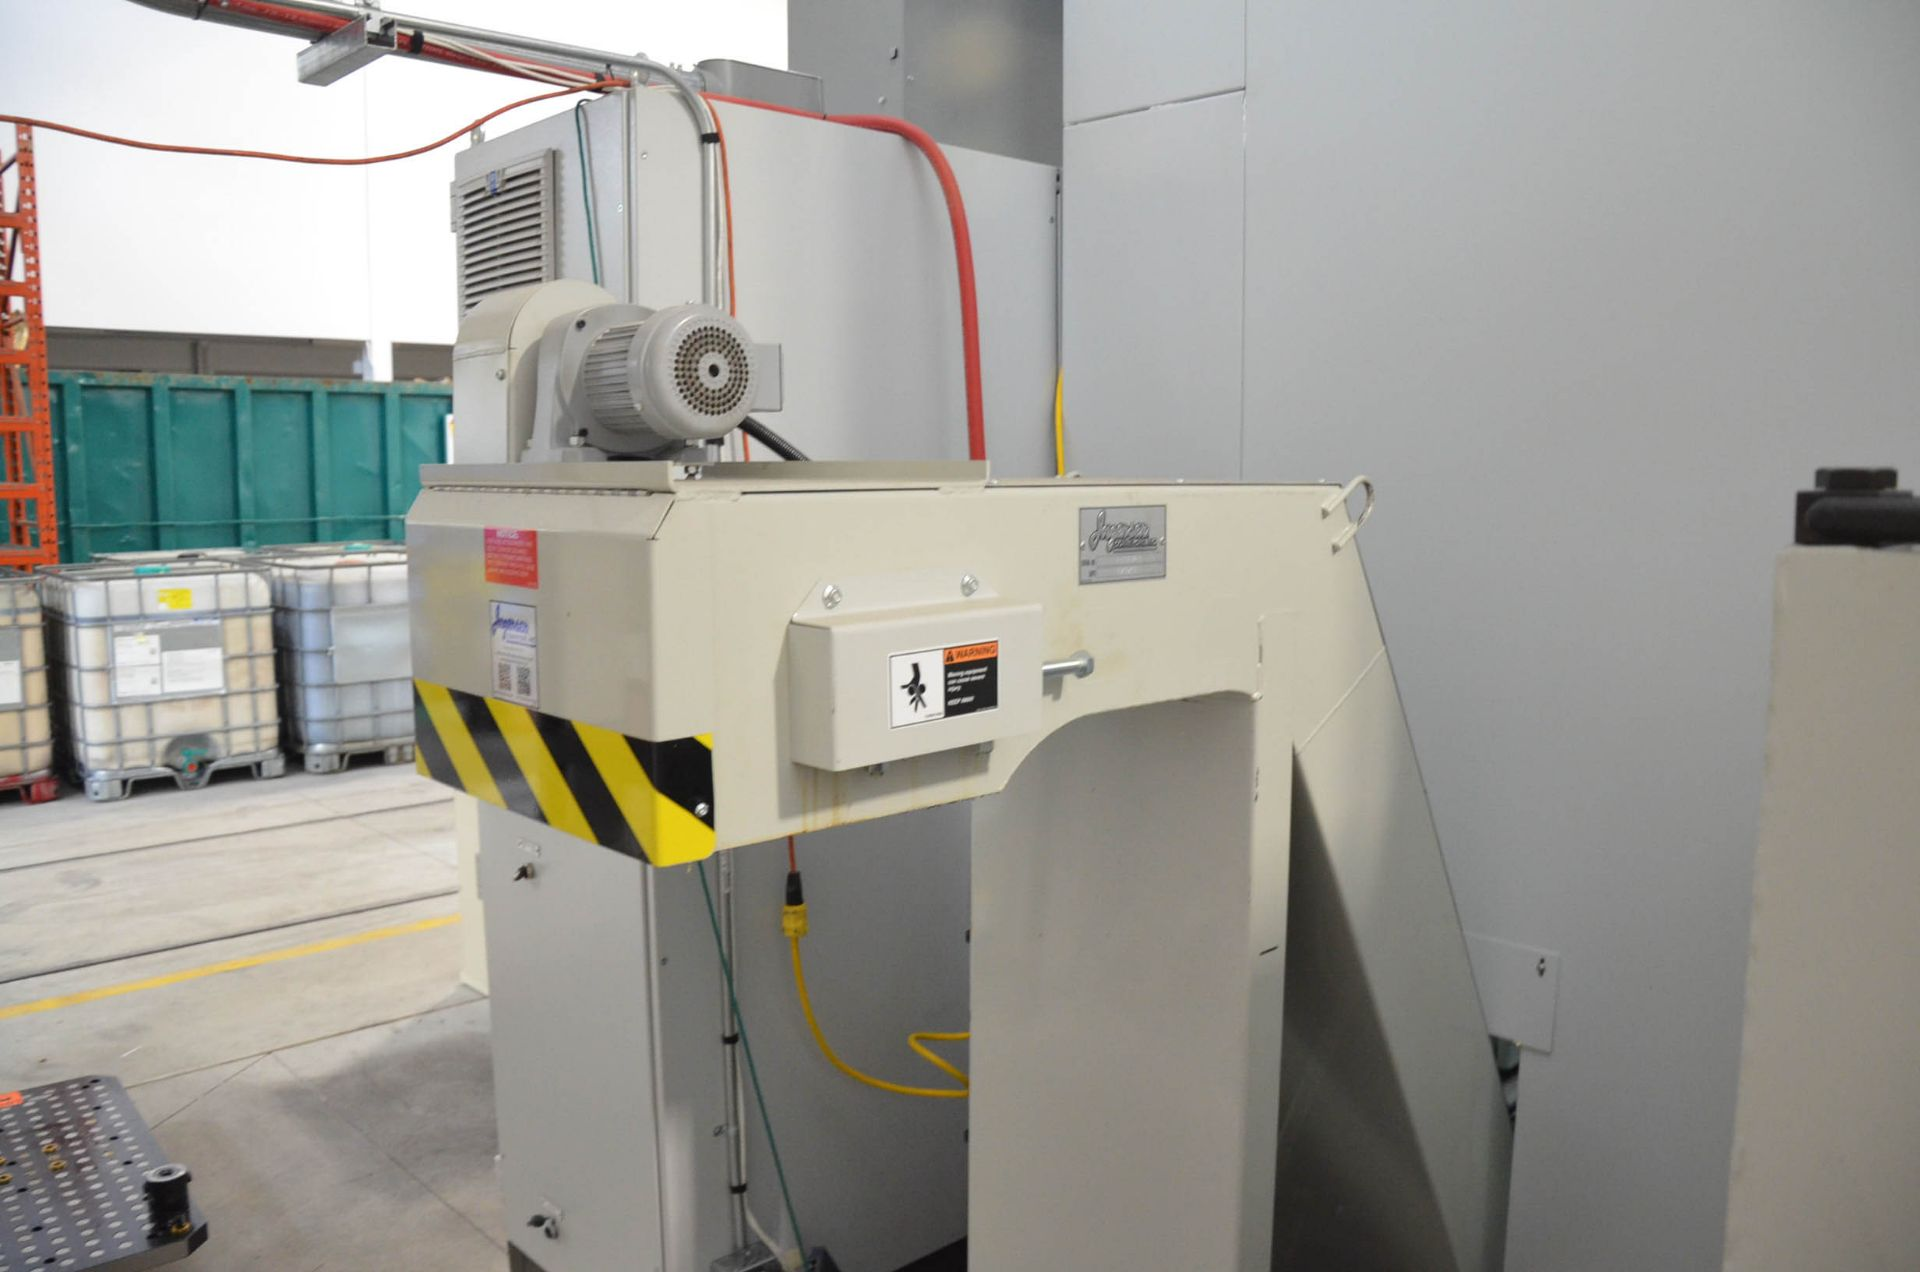 UNISIG (2020) USC-M38 5-AXIS COMBINATION CNC GUN DRILLING AND MILLING MACHINE WITH HEIDENHAIN ITNC - Image 15 of 17